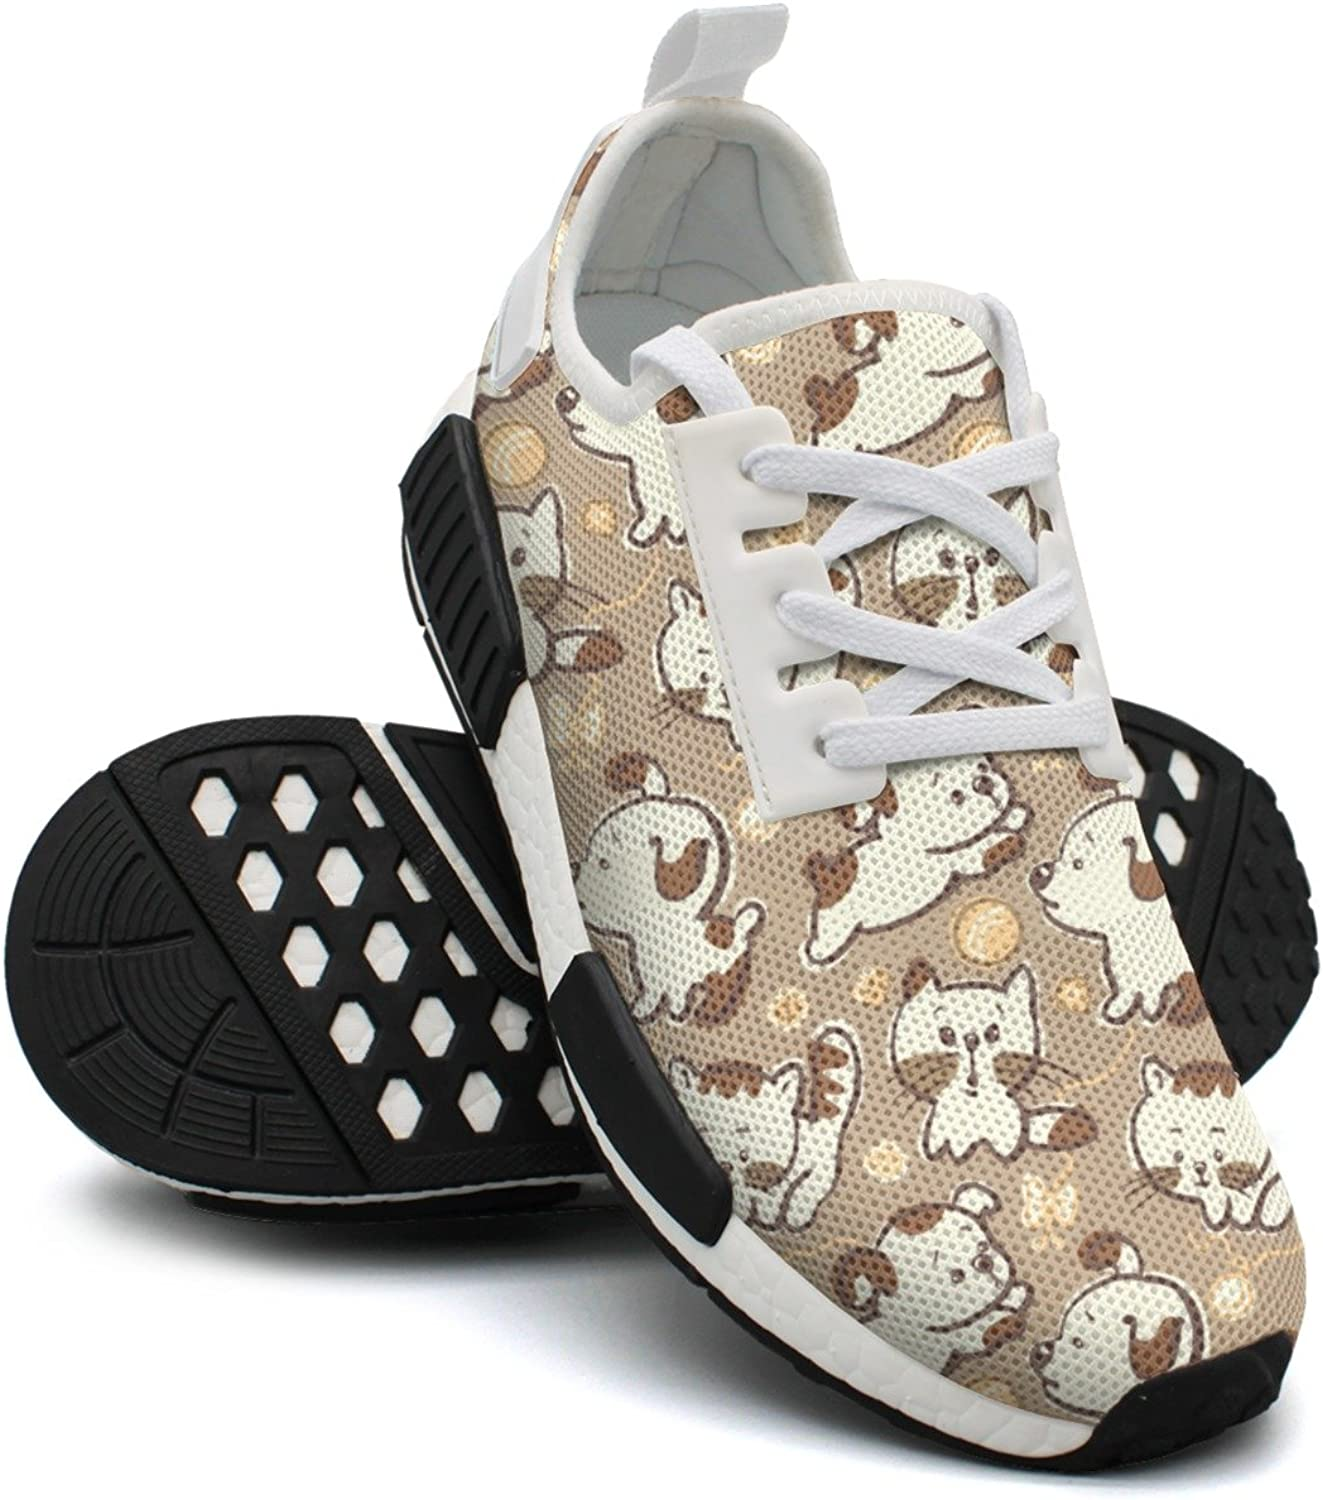 Ououla Cute Puppies And Kittens Womens Funny NMD PK Road Running shoes